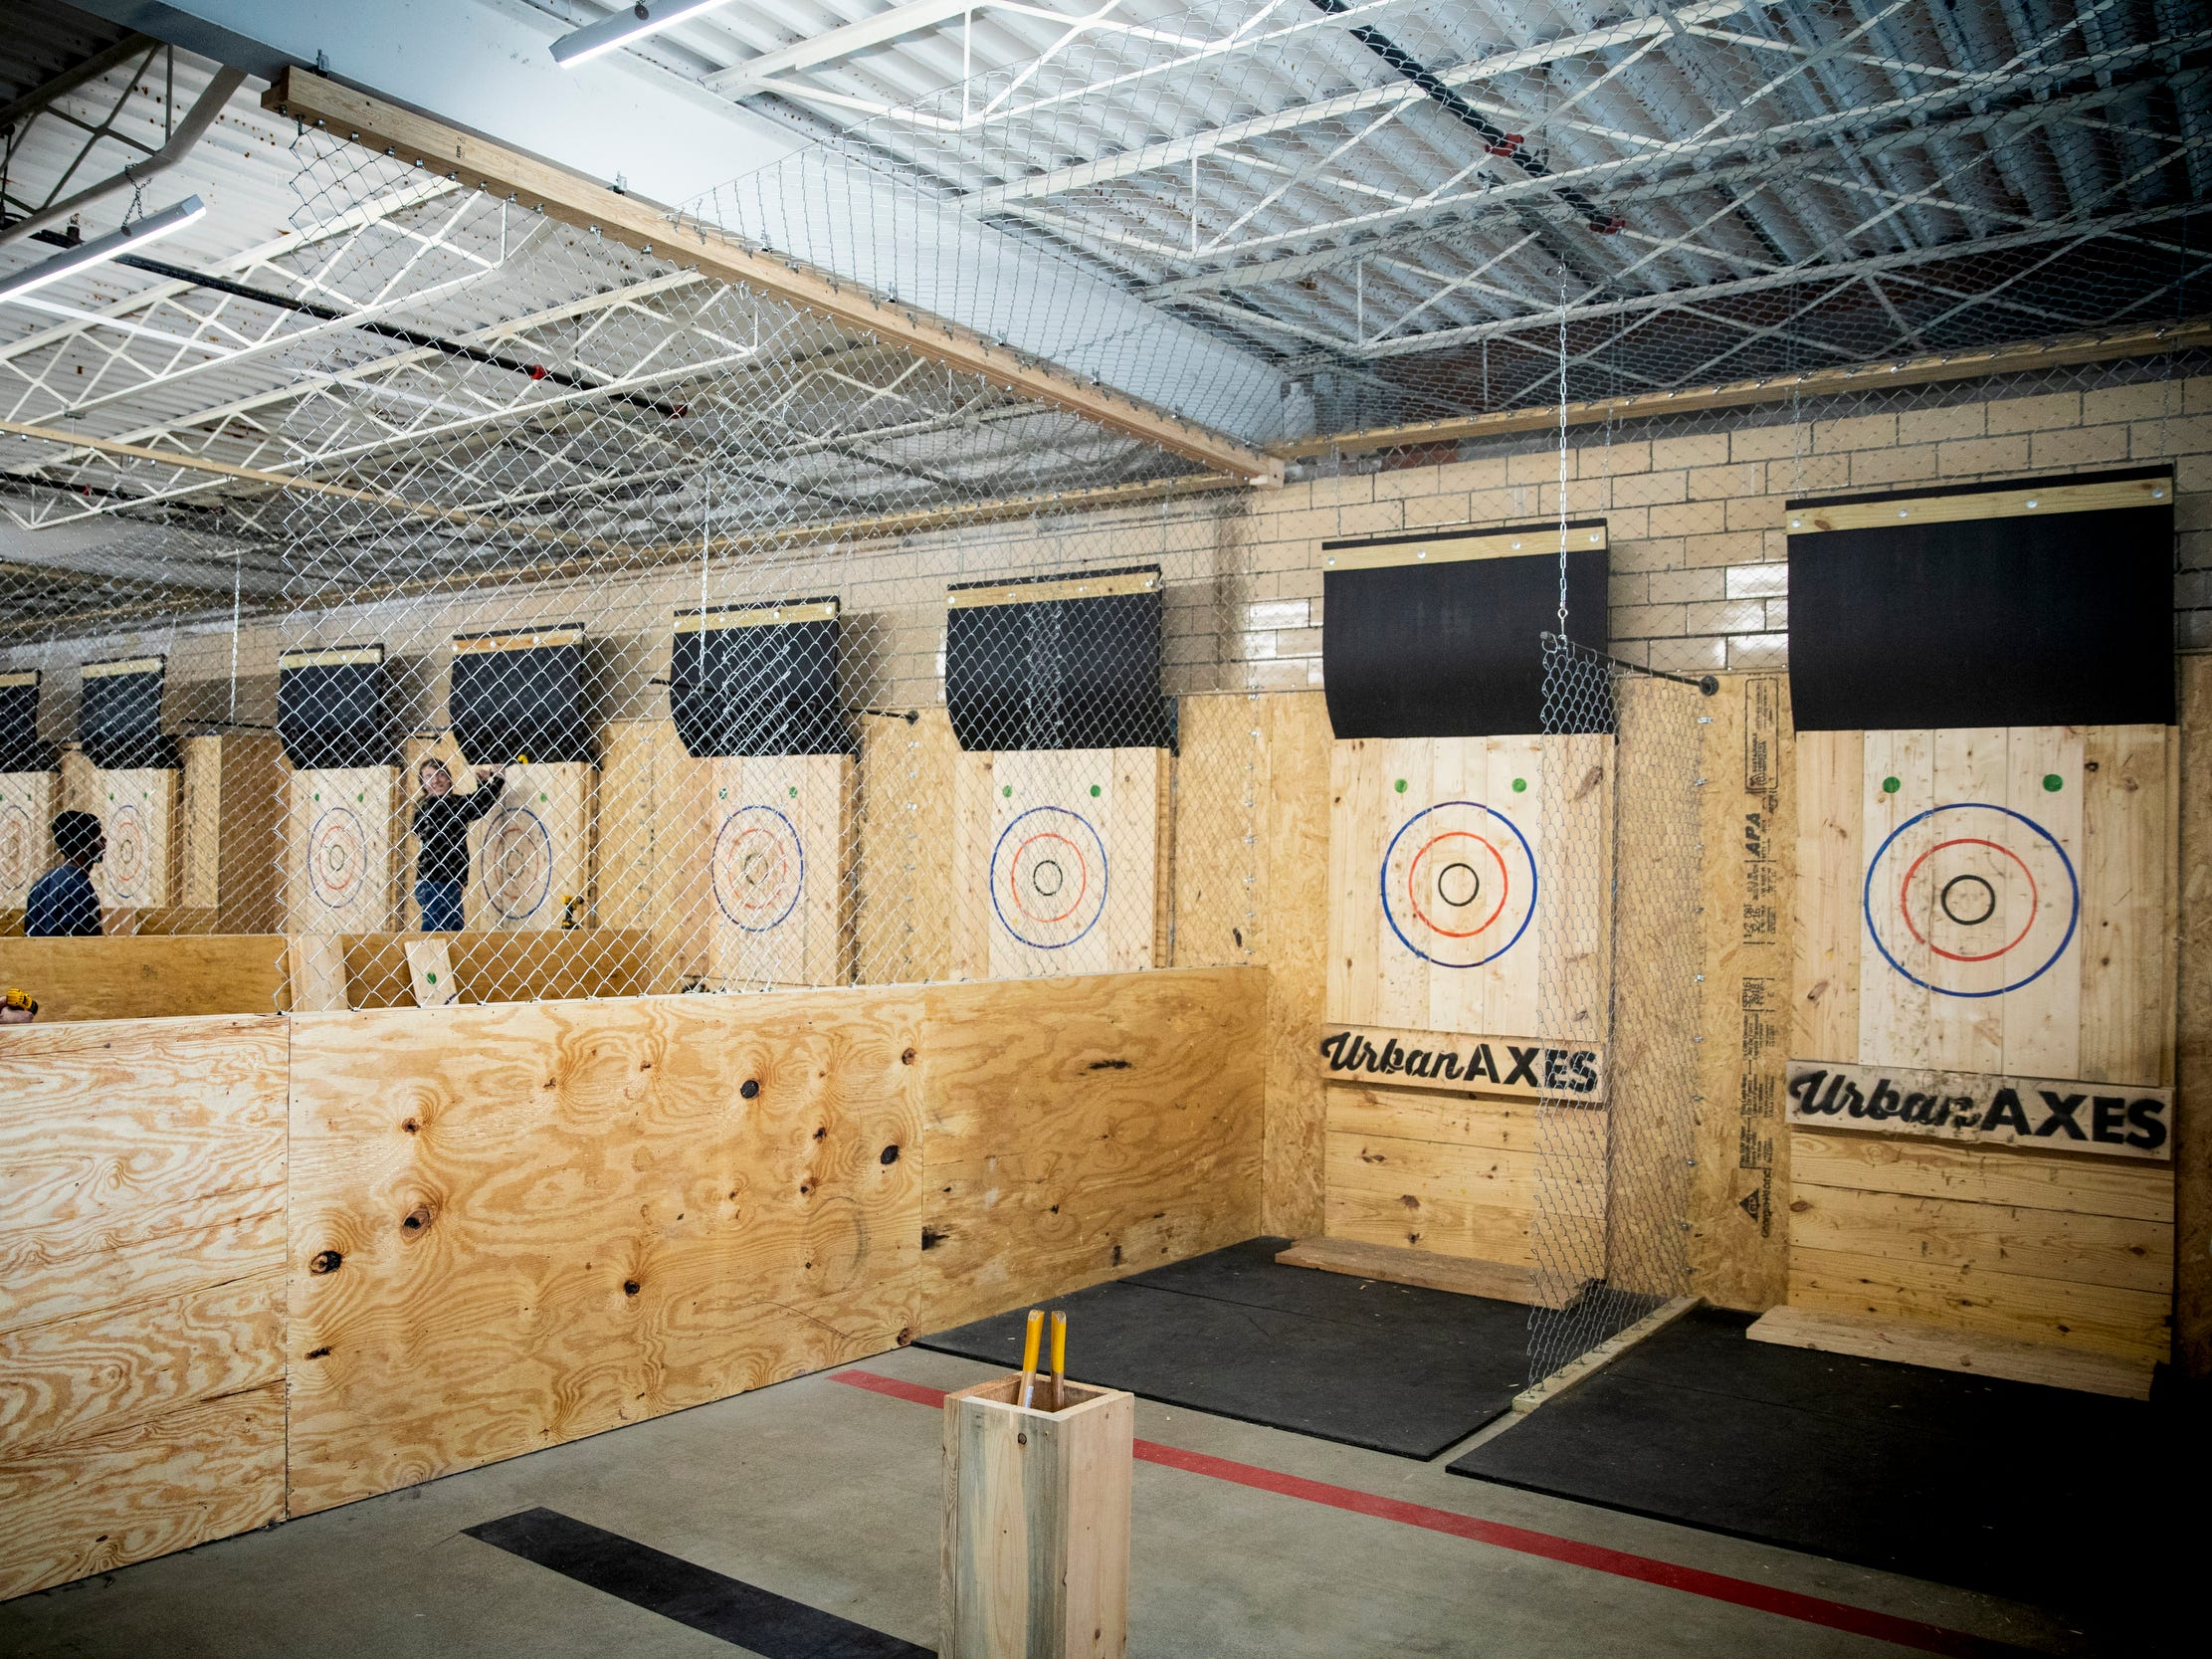 Urban Axes Cincinnati will open on Elm Street in Over-the-Rhine Friday, January 25, 2019. Patrons must be at least 21 years of age and fill out a waiver to participate.